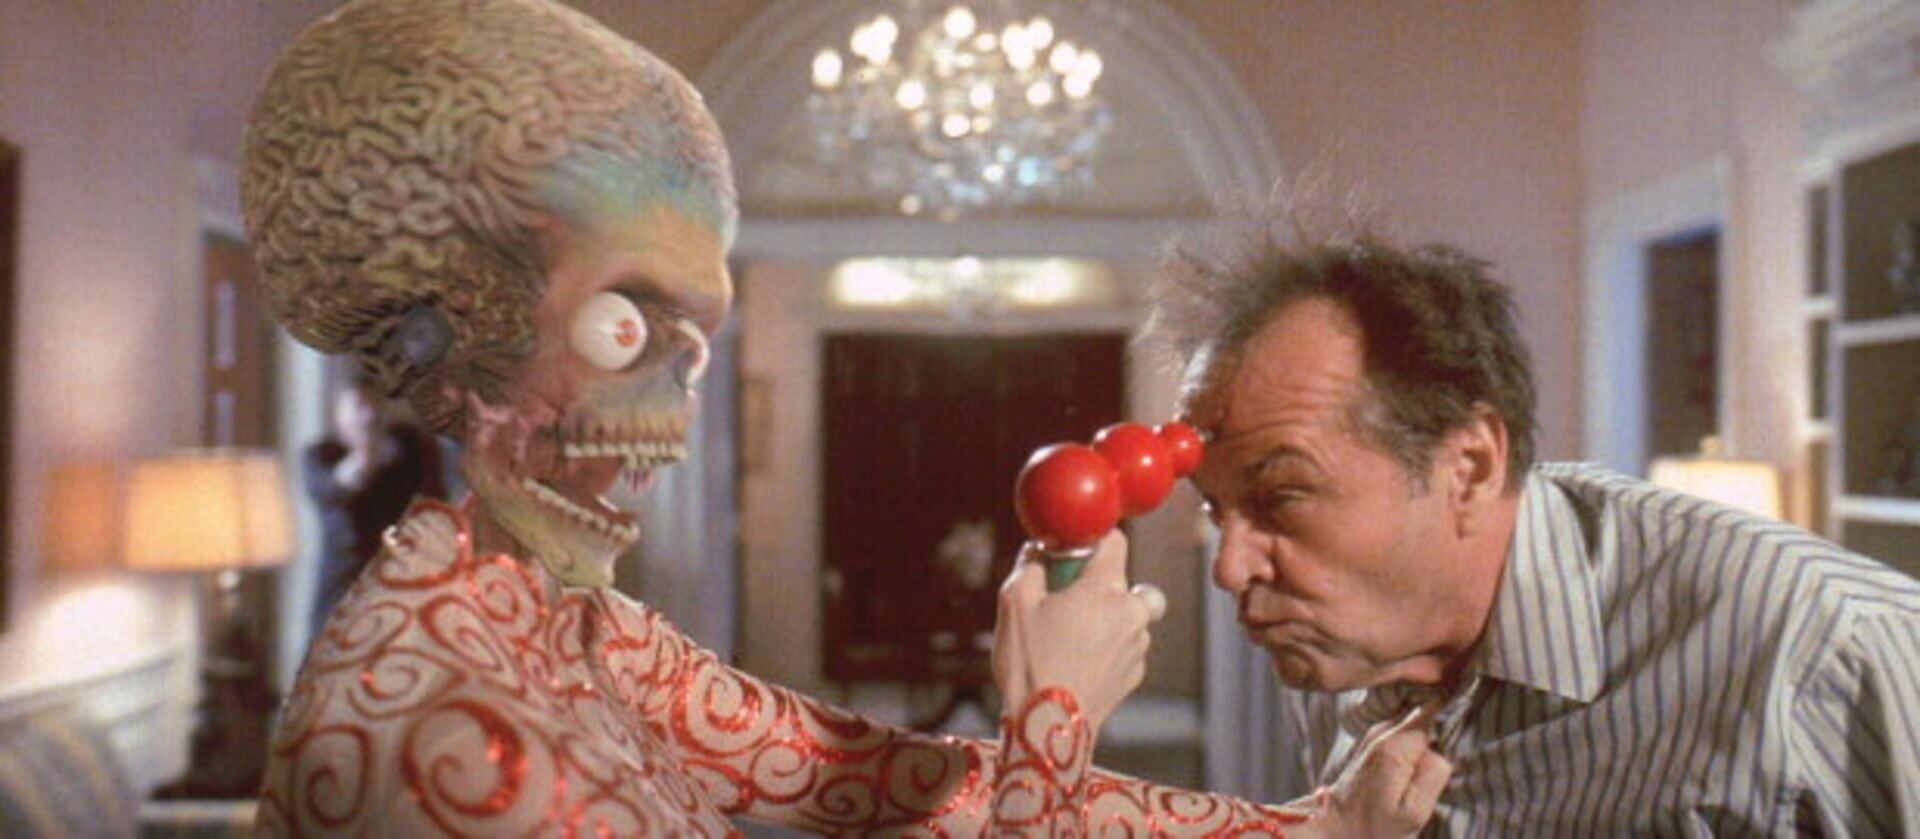 Mars Attacks! - Image 15